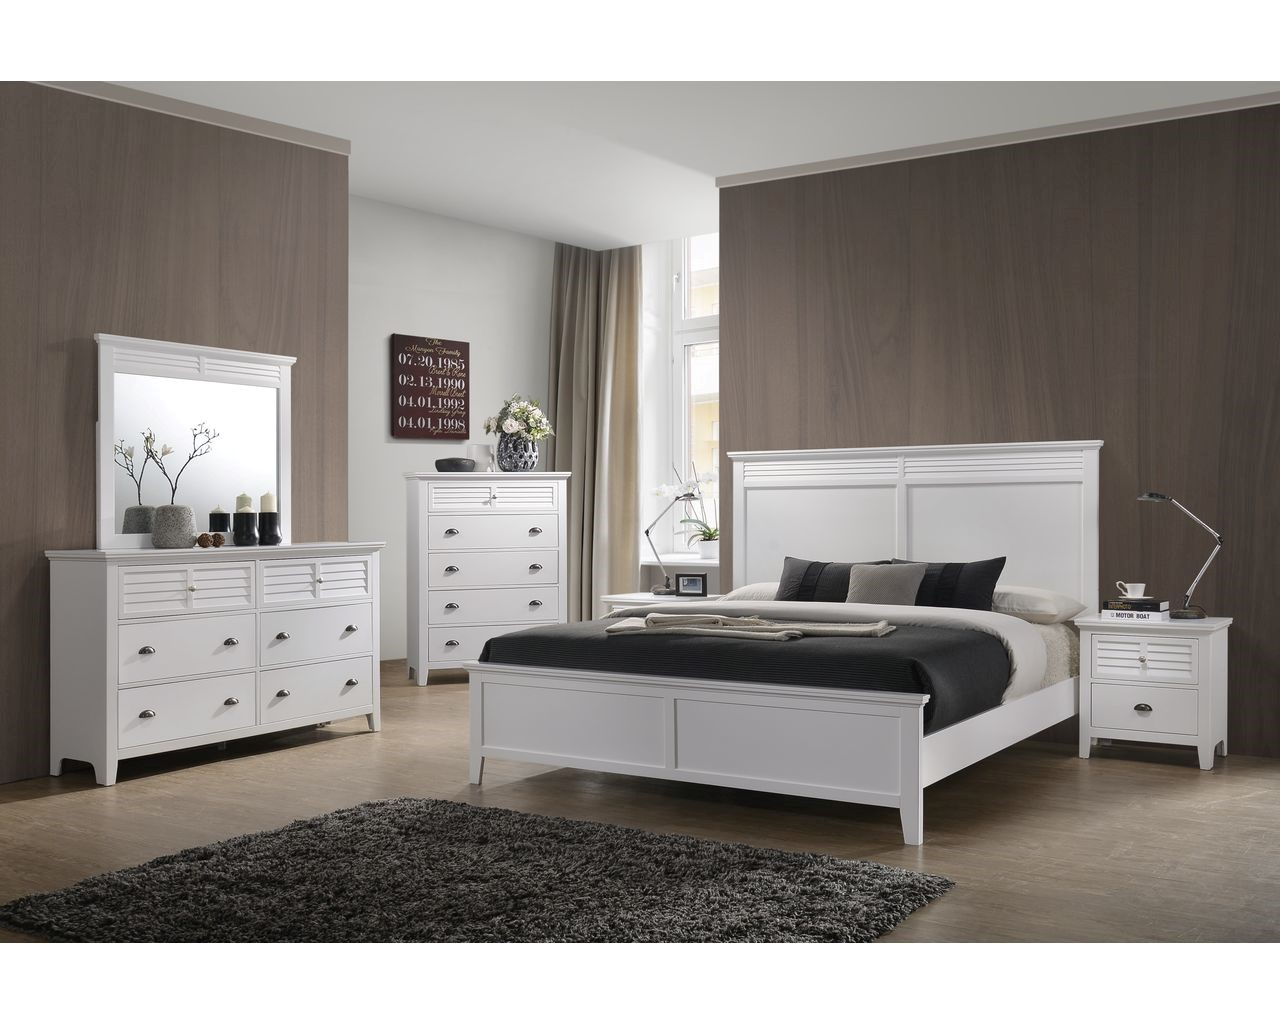 Lifestyle Furniture White Queen Bed